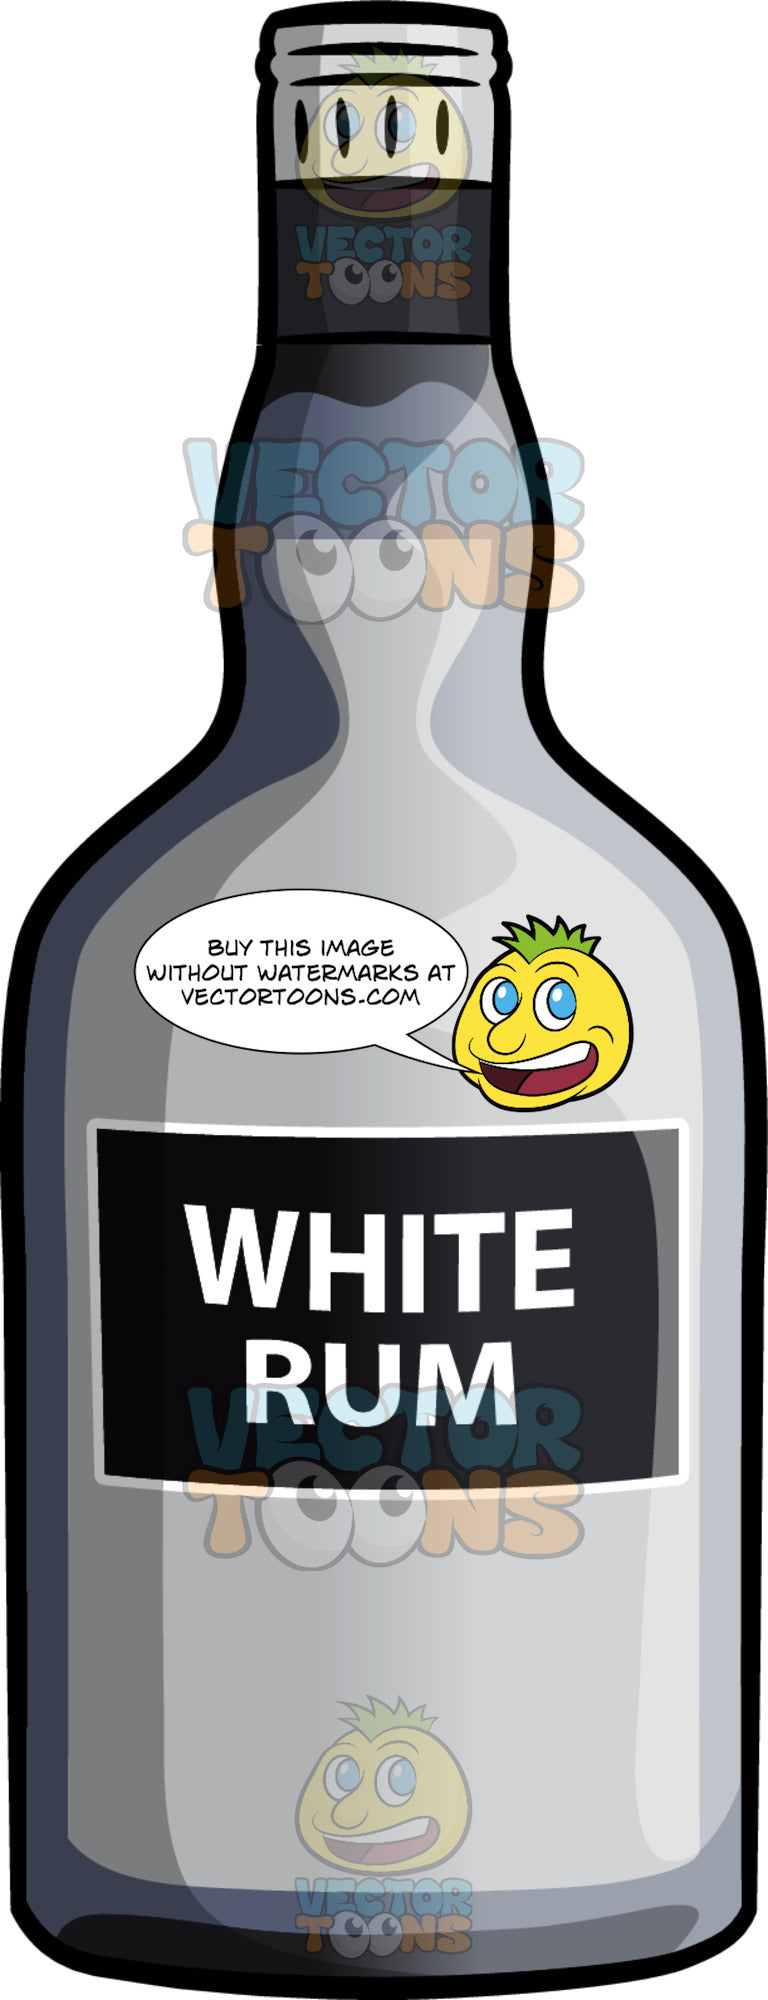 A Bottle Of White Rum